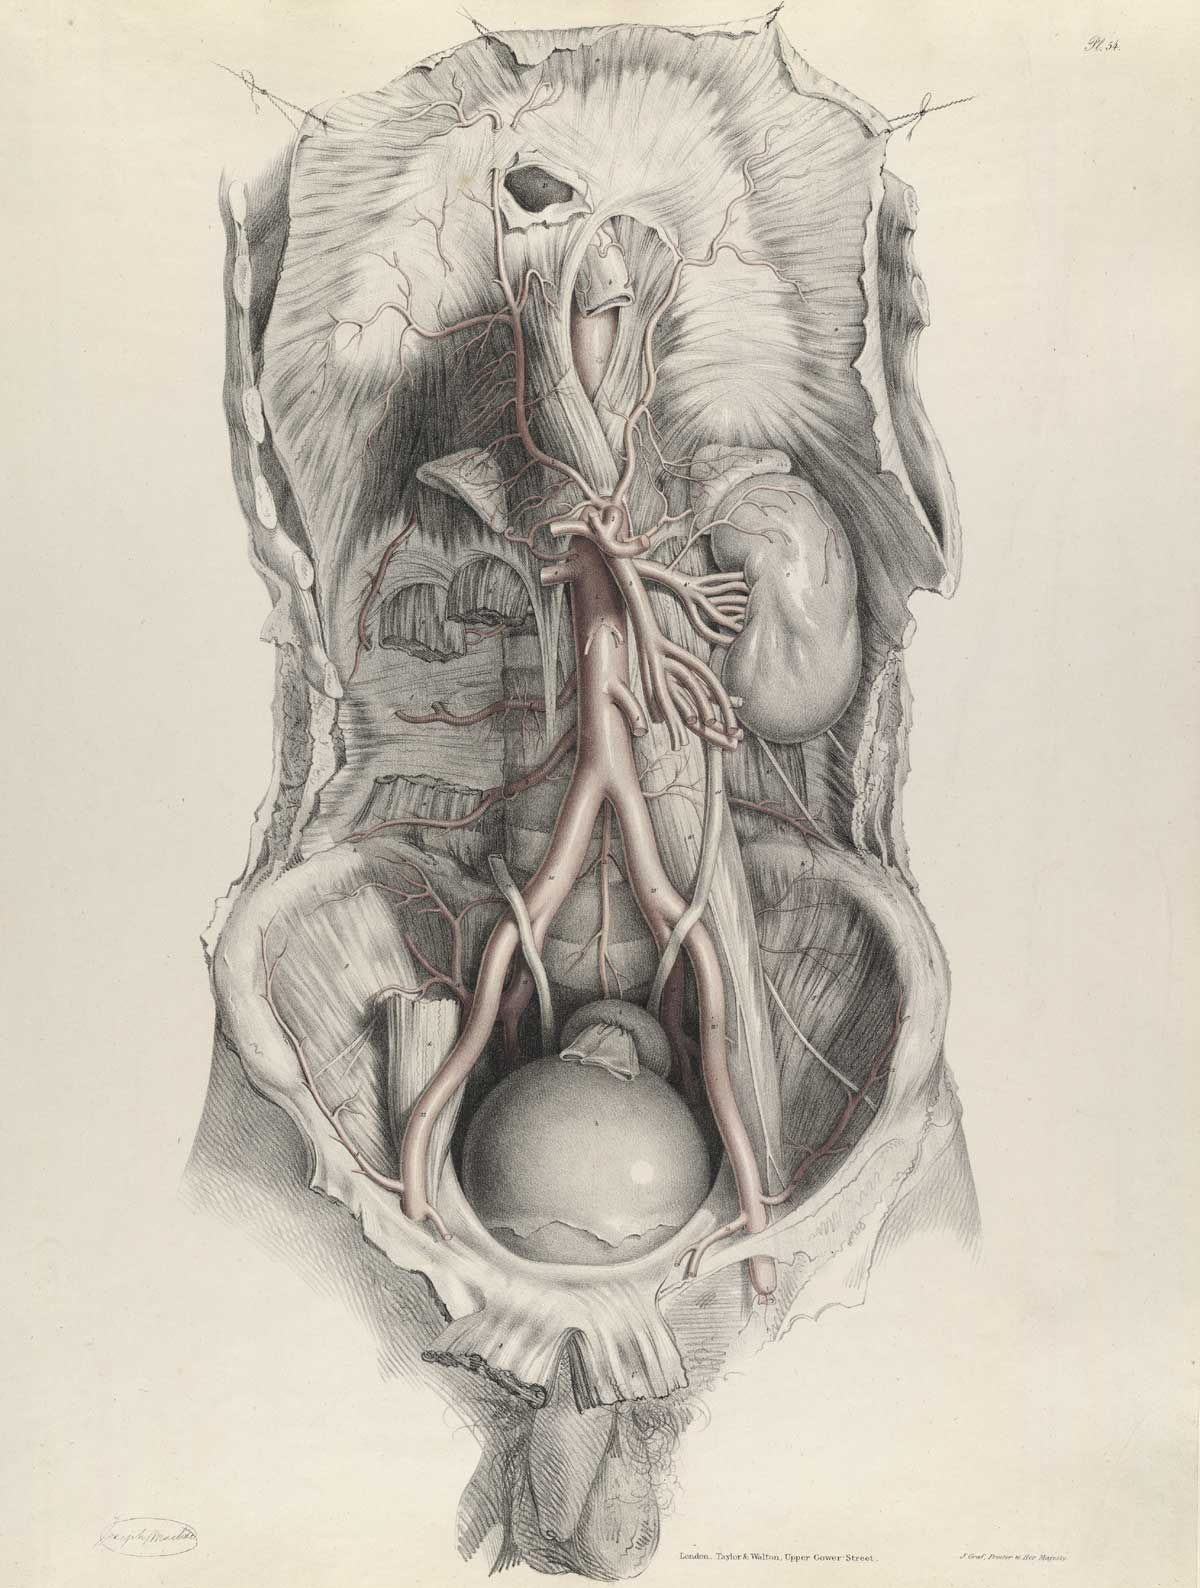 Richard Quain: The anatomy of the arteries of the human body